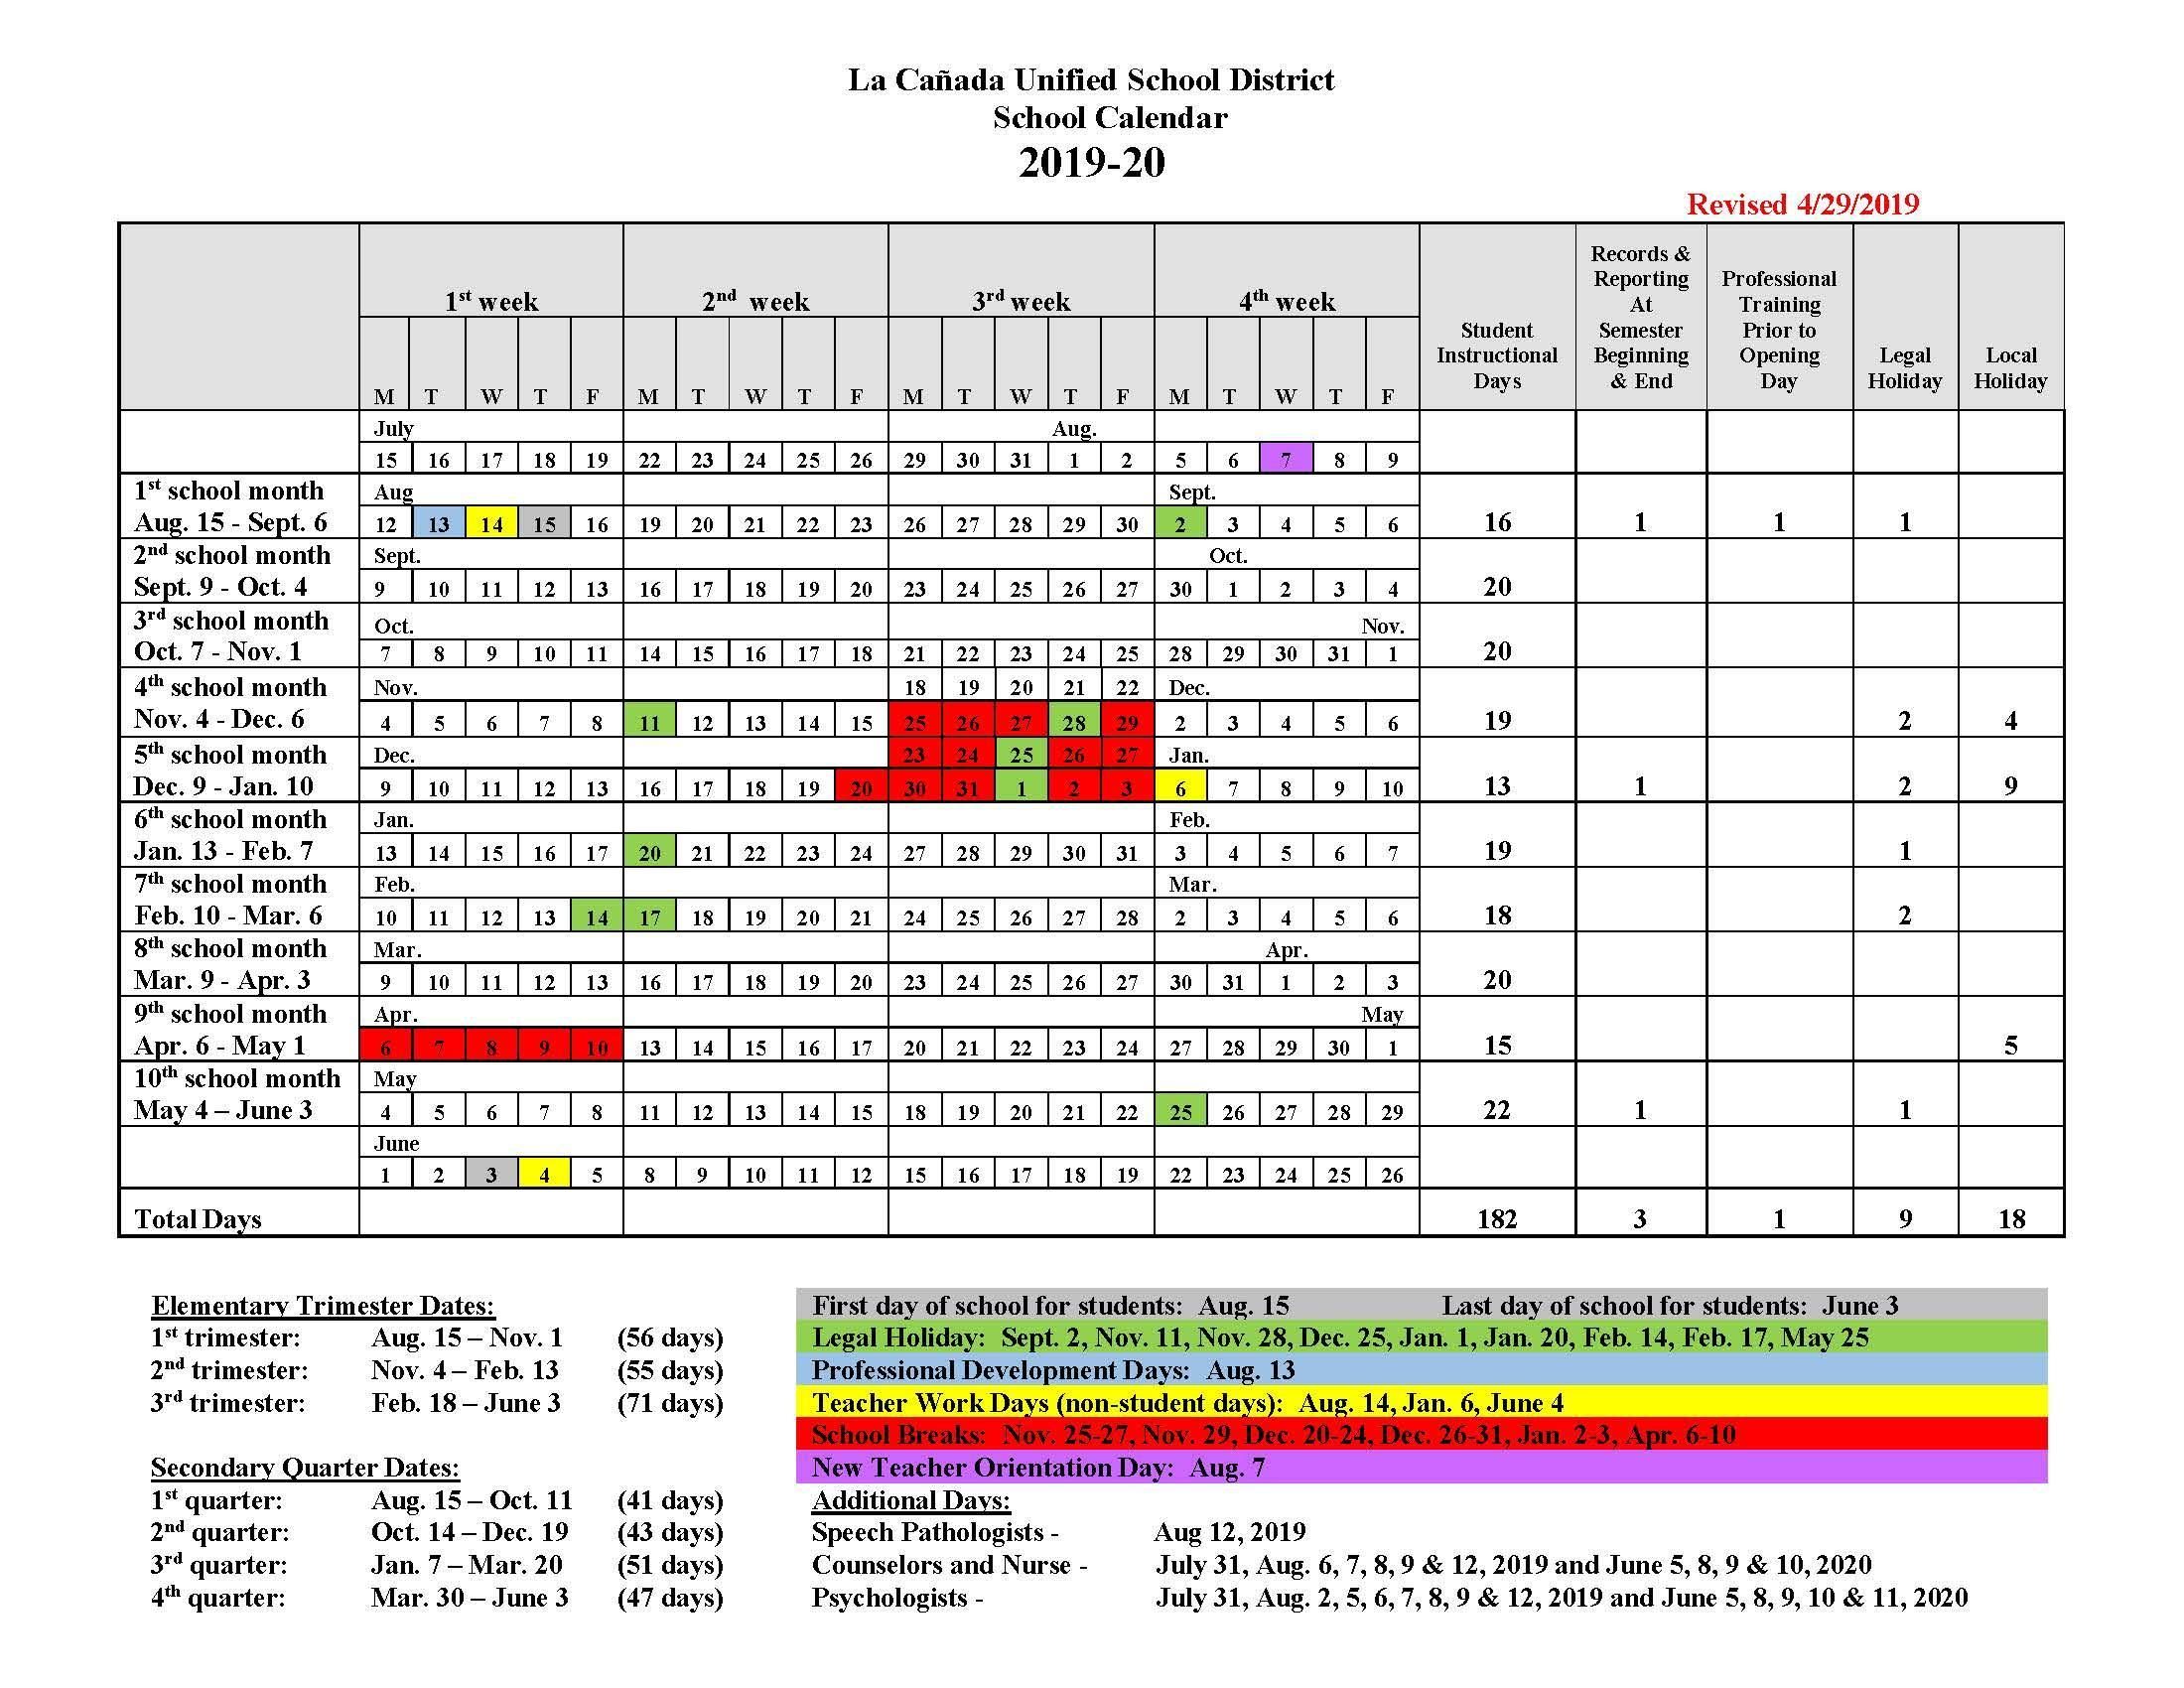 Calendar Sept 2020.Instructional Days Calendars Yearly Calendars La Canada Unified